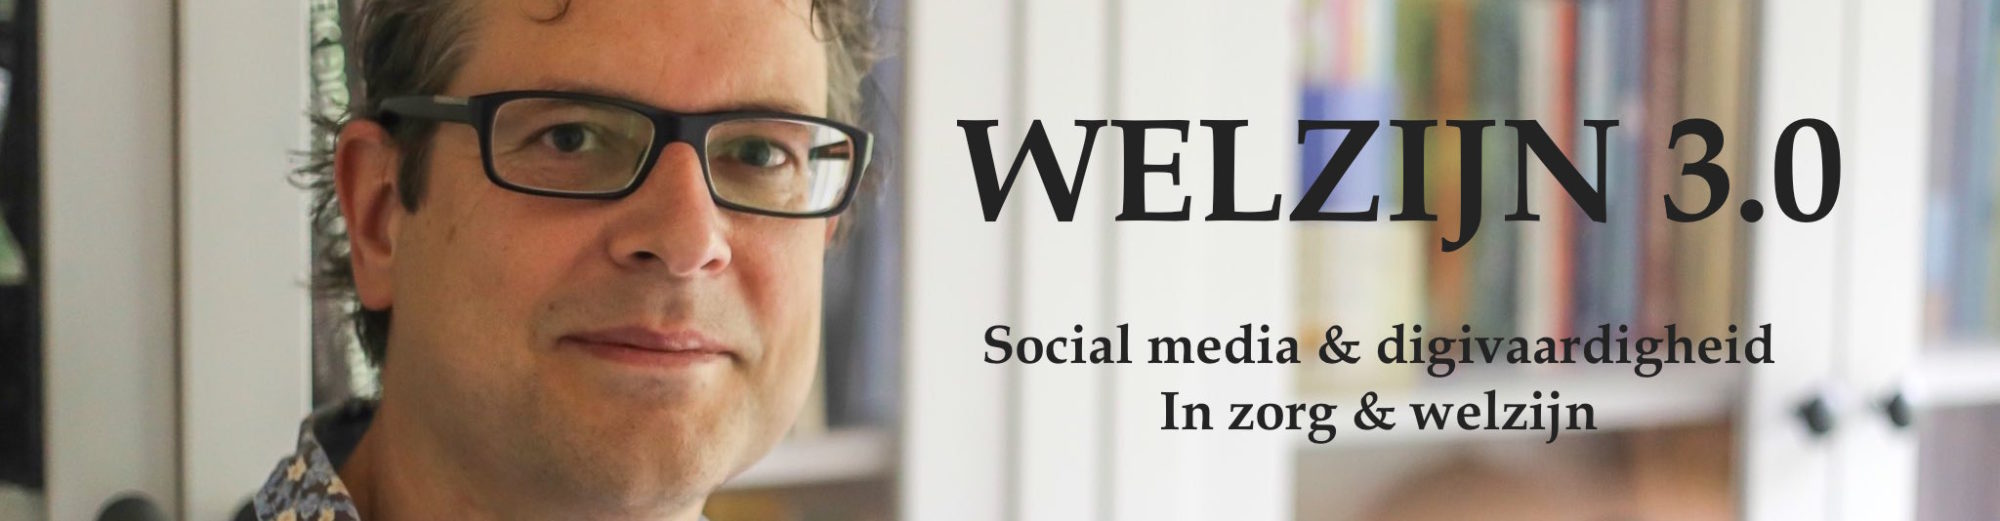 Welzijn 3.0, social media in zorg en welzijn, training en workshop